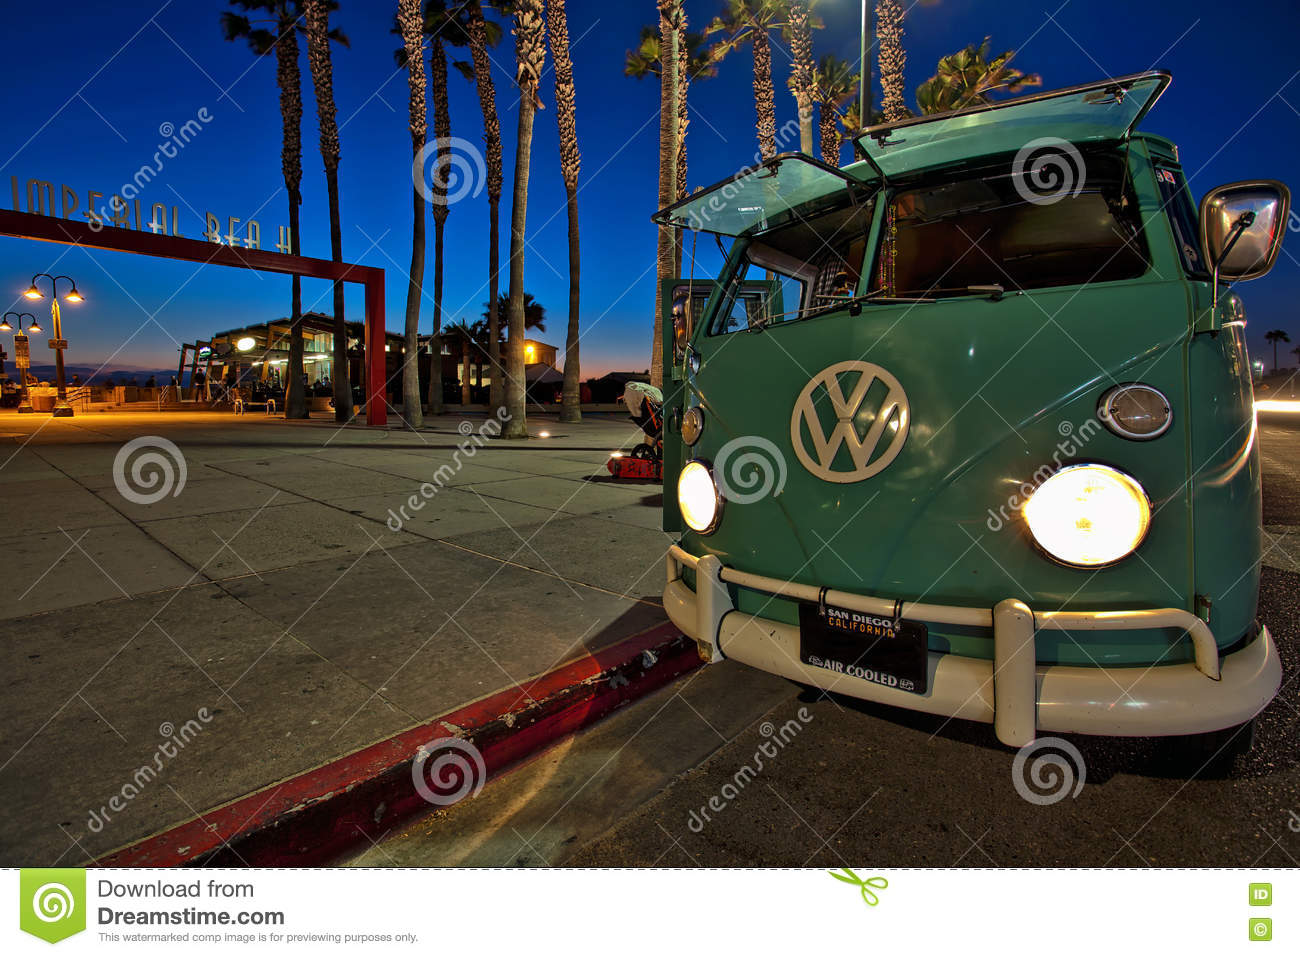 Volkswagen Bus At The Imperial Beach Pier, California